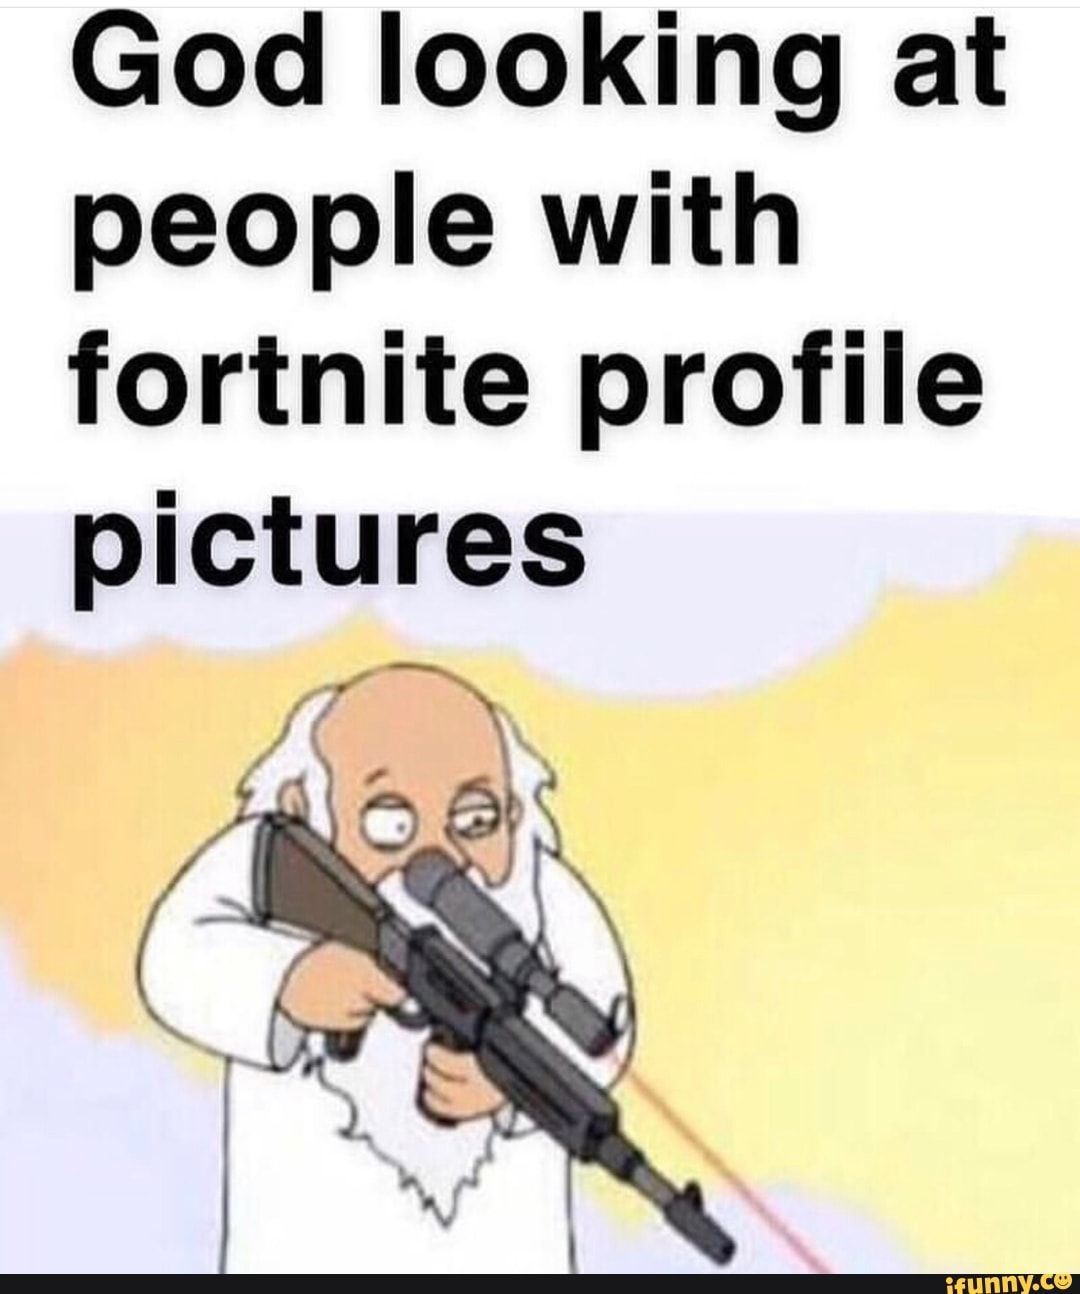 God looking at people with fortnite profile pictures